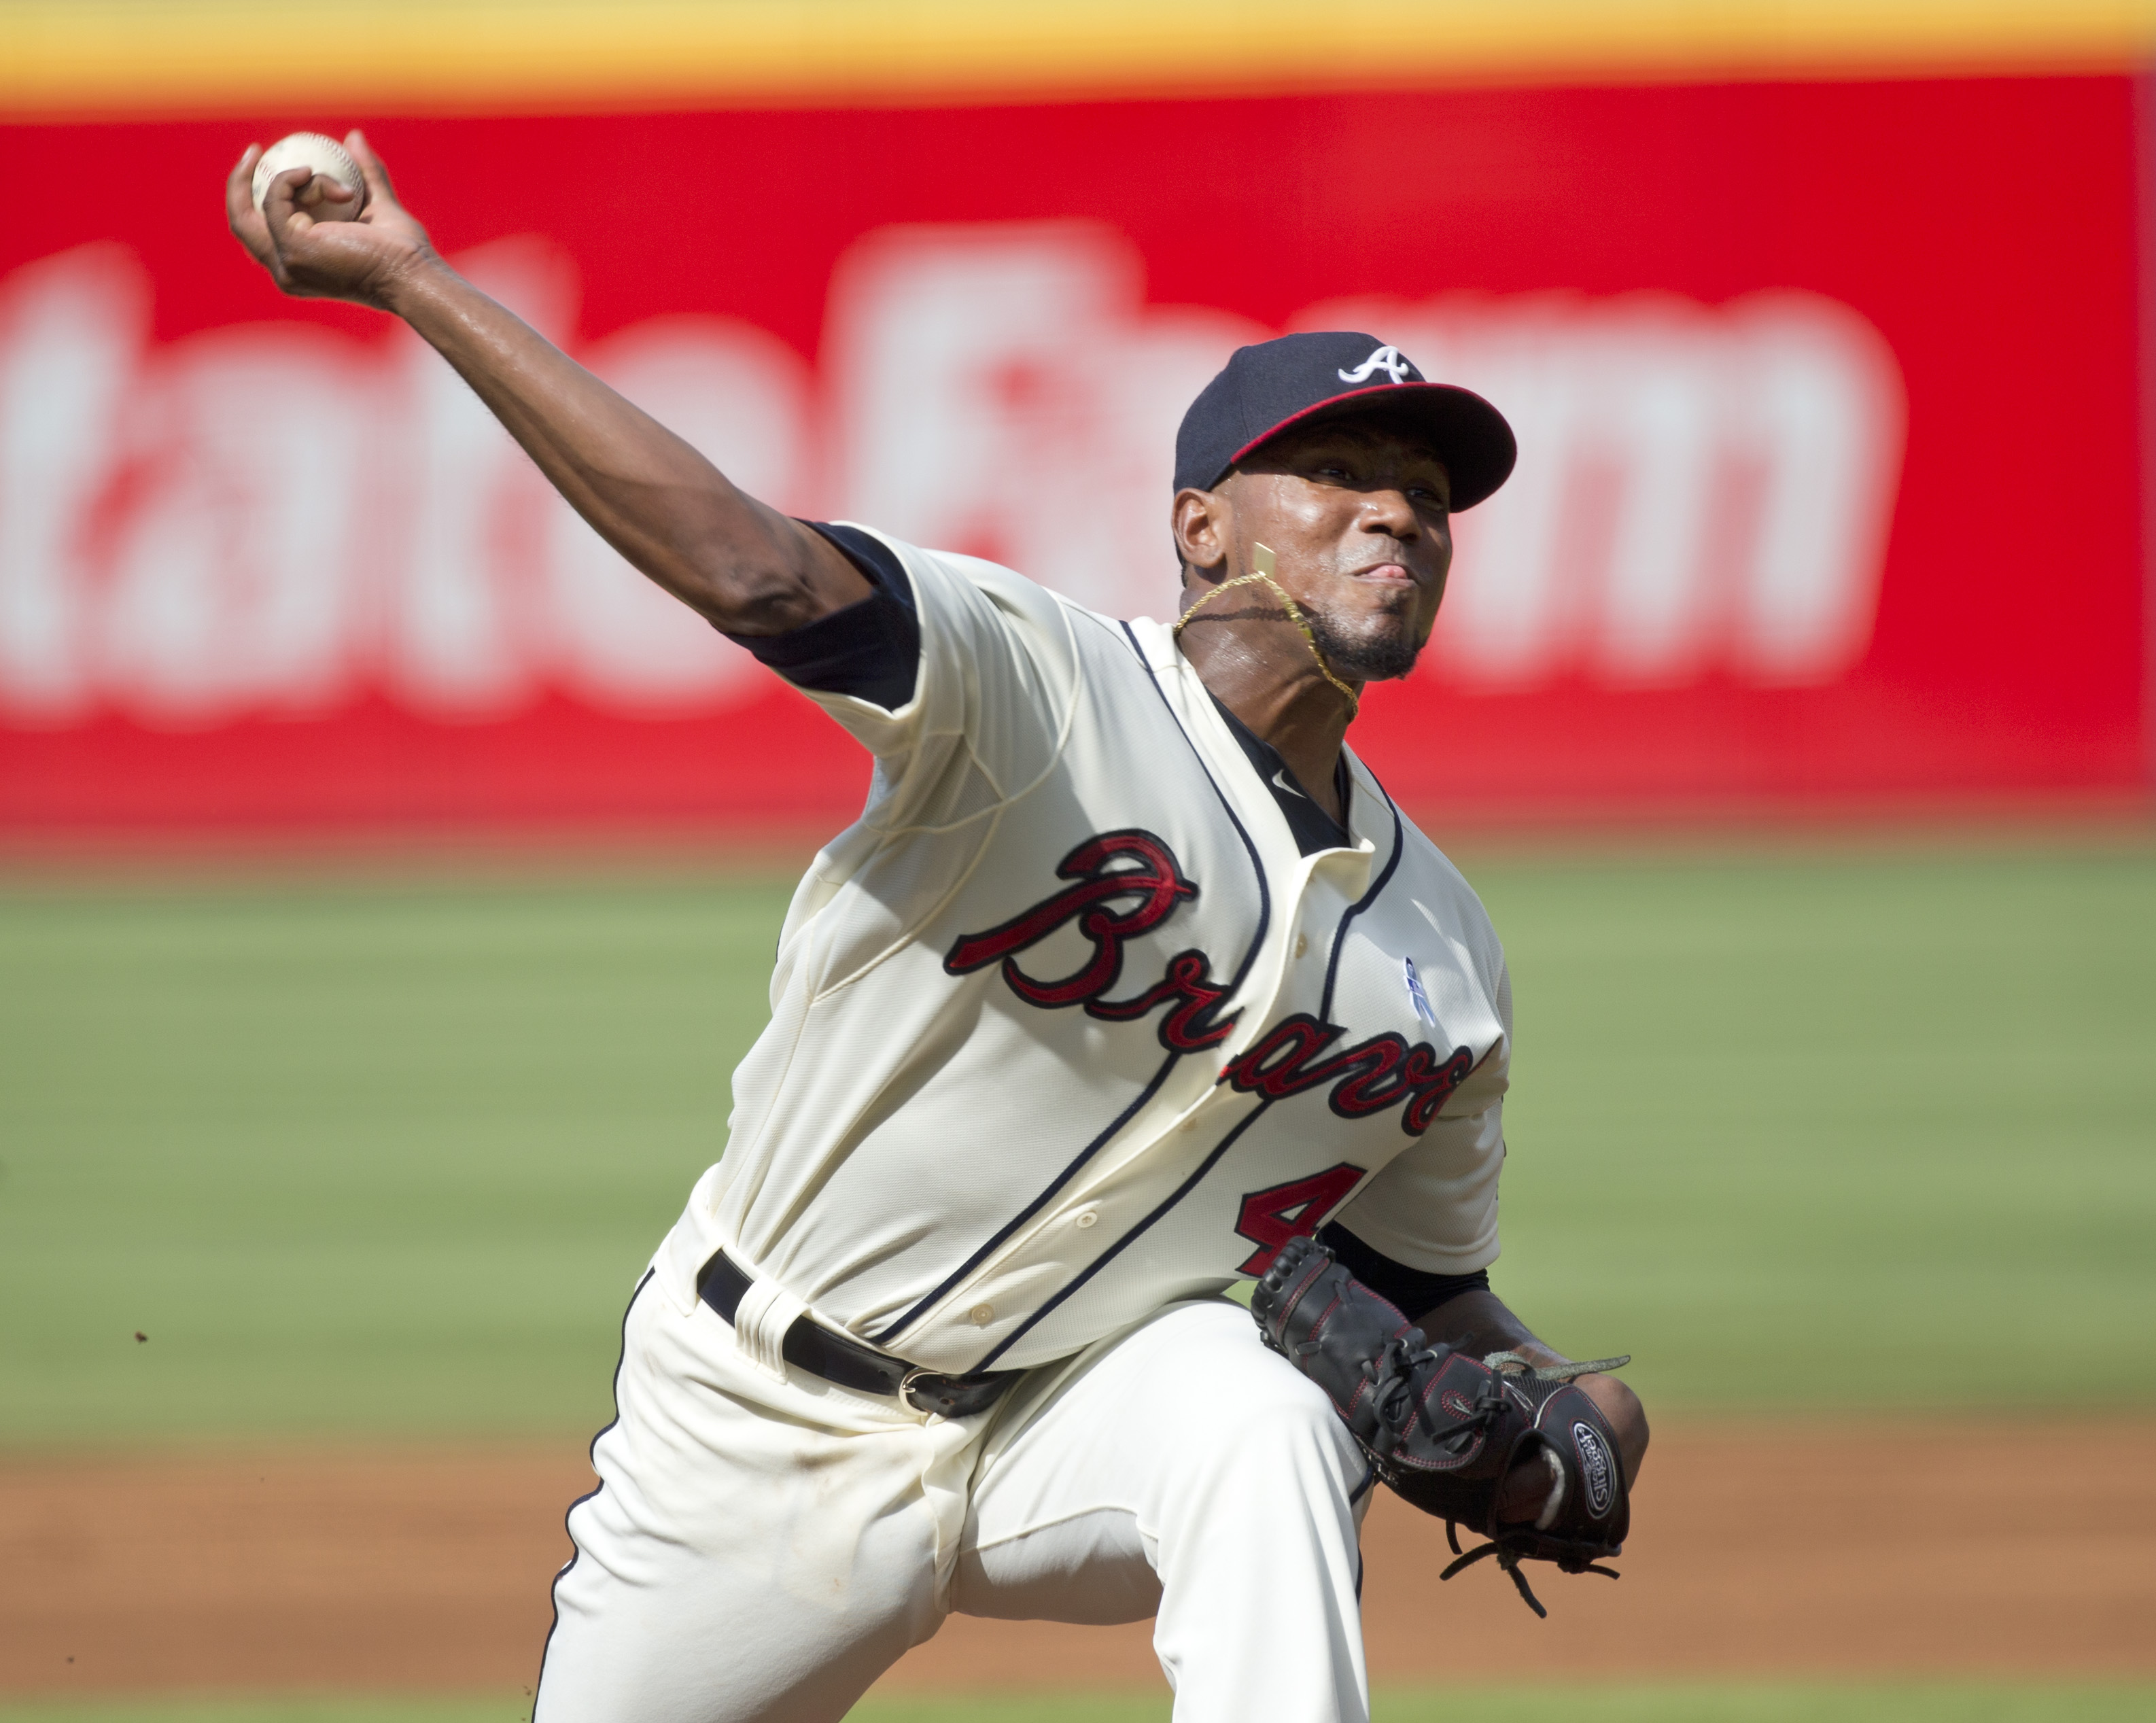 Atlanta Braves starting pitcher Julio Teheran works in the first inning of a baseball game against the New York Mets, Sunday, June 21, 2015, in Atlanta. (AP Photo/John Bazemore)